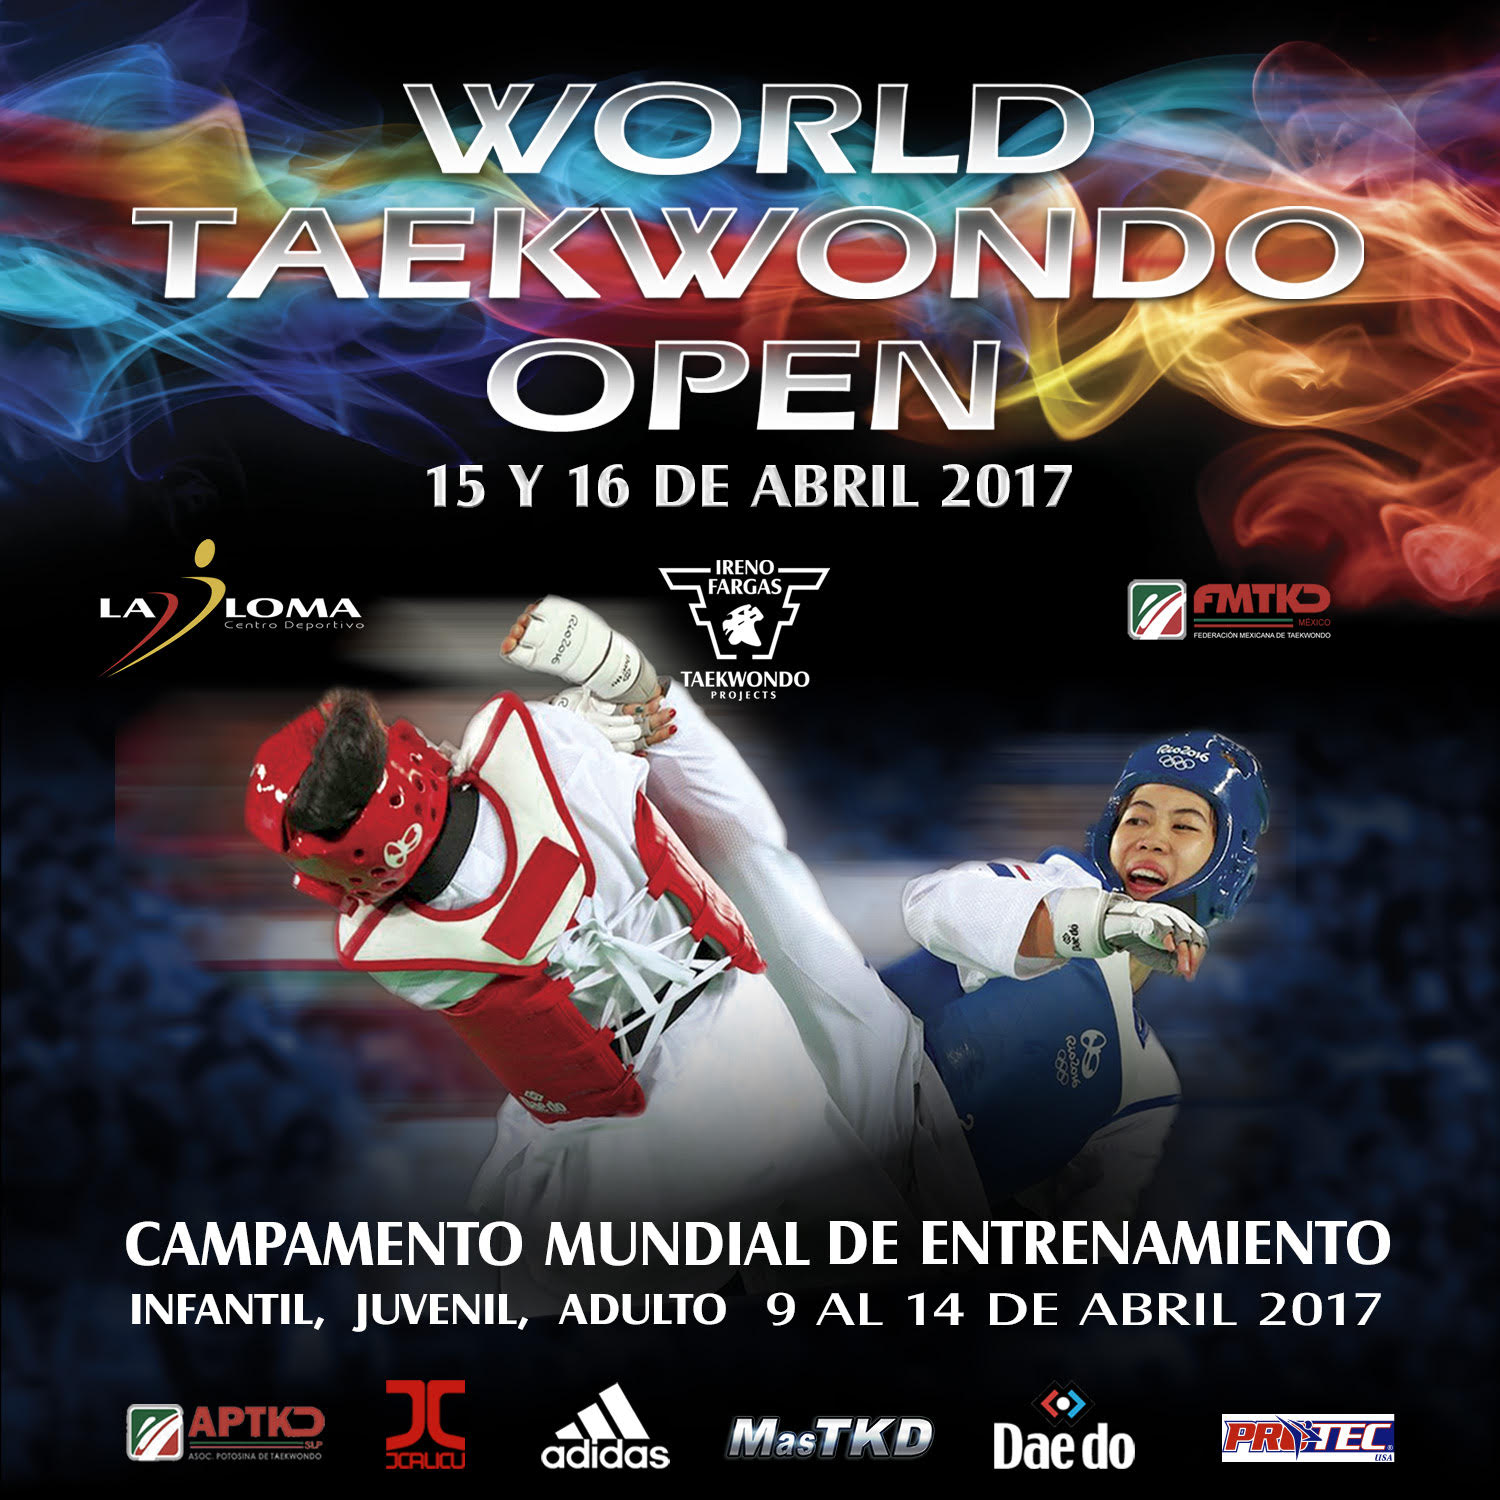 World Taekwondo Open 2017